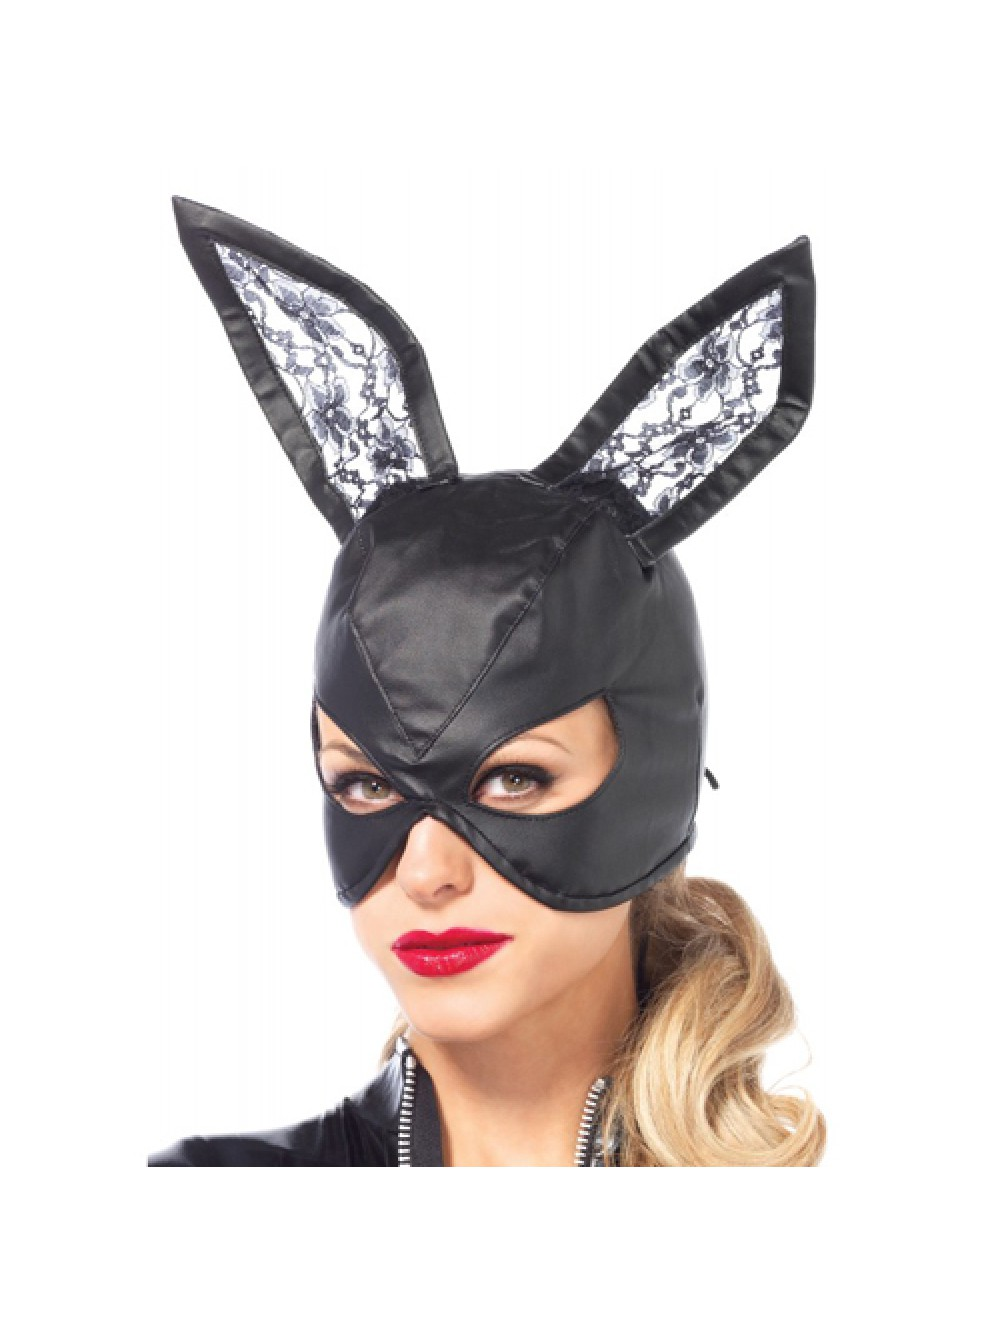 Artificial Leather Bunny Mask - Black 714718511443